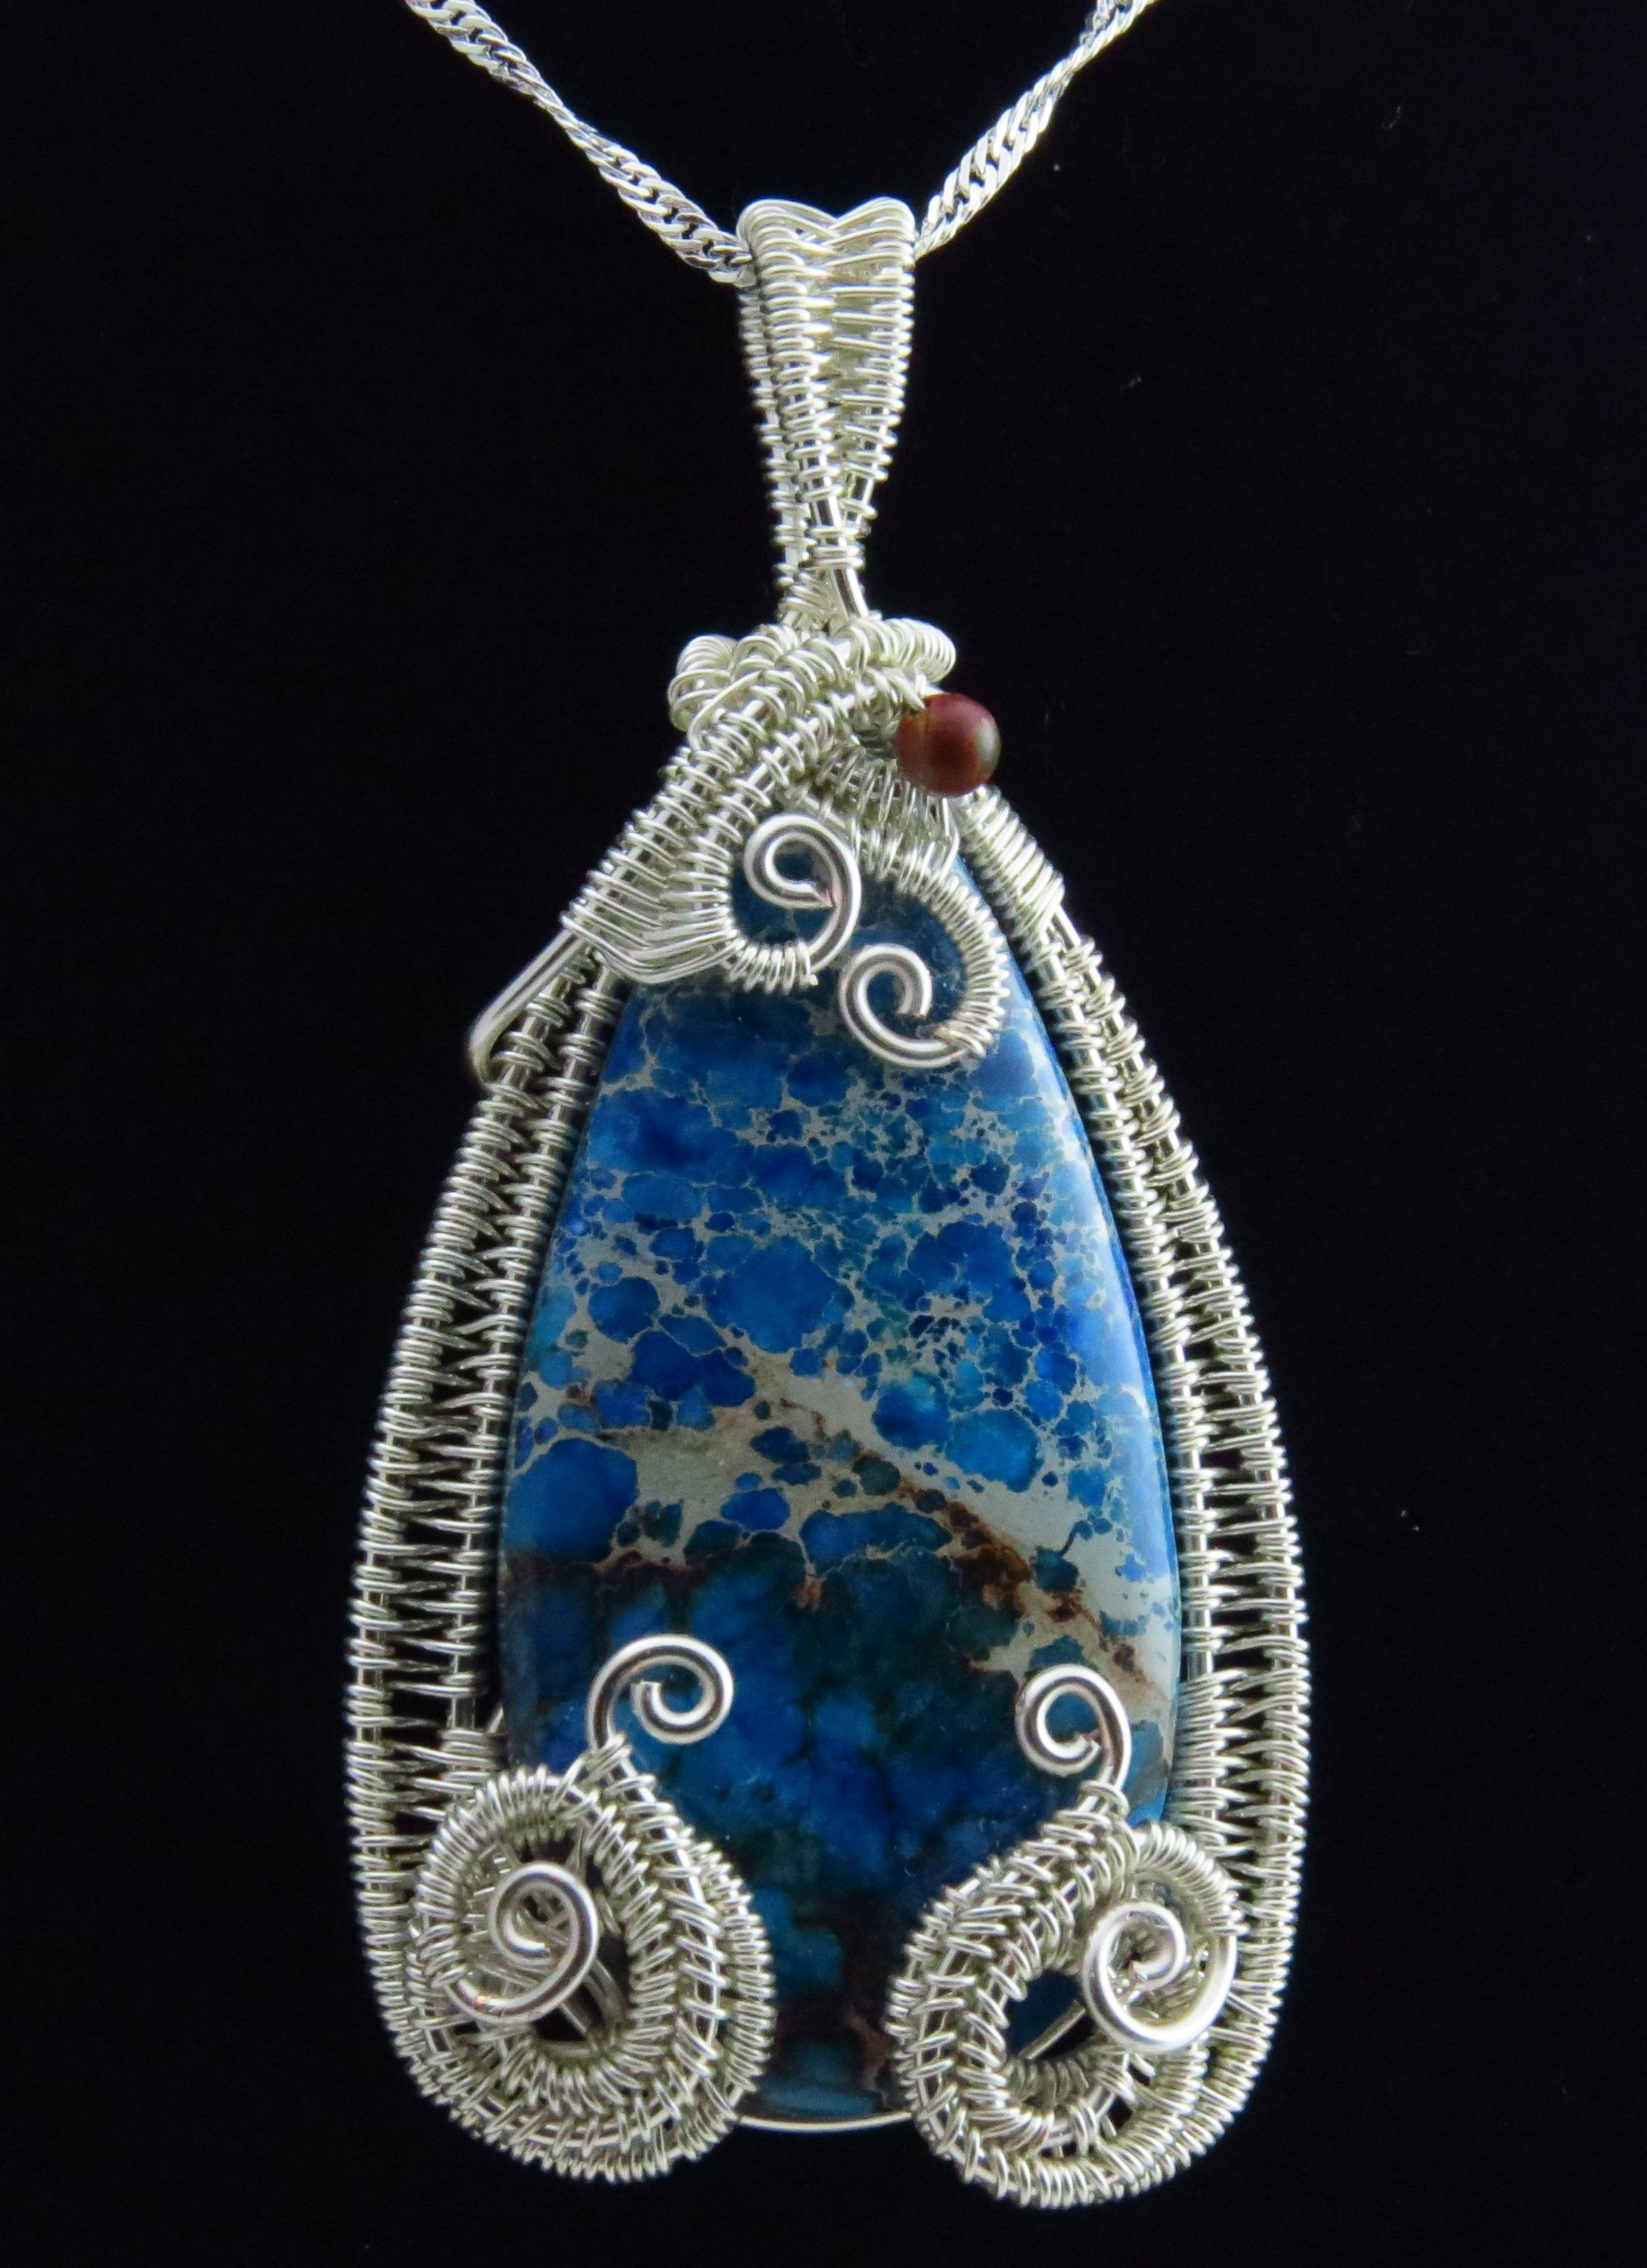 Imperial Jasper cabochon wrapped in Silver with Picasso Jasper accent bead. by Arte Laboratae - Katalin KB Walcott